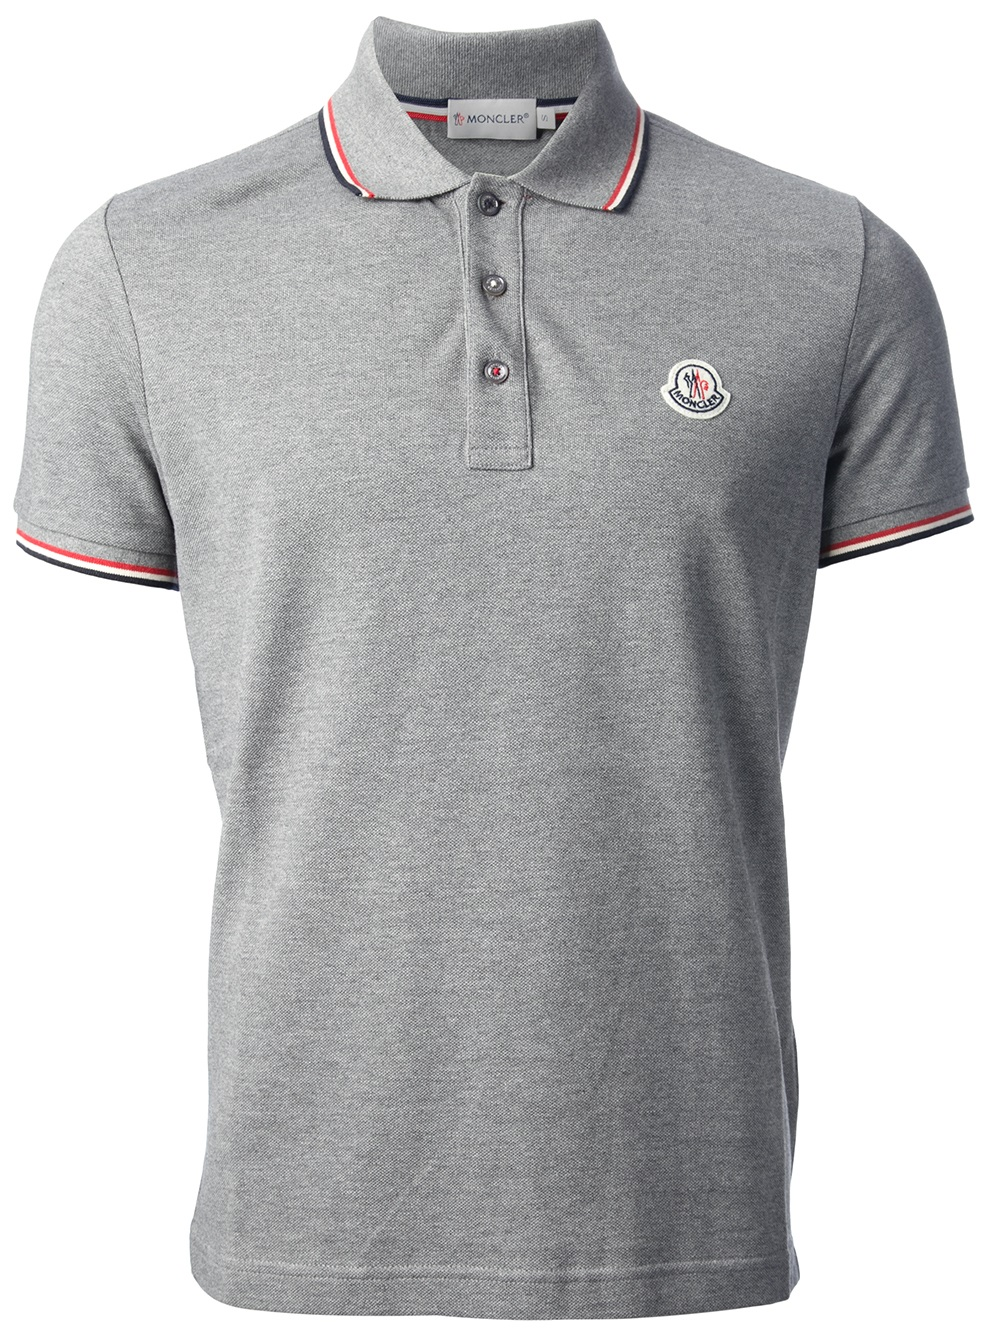 Lyst Moncler Short Sleeve Polo Shirt In Gray For Men